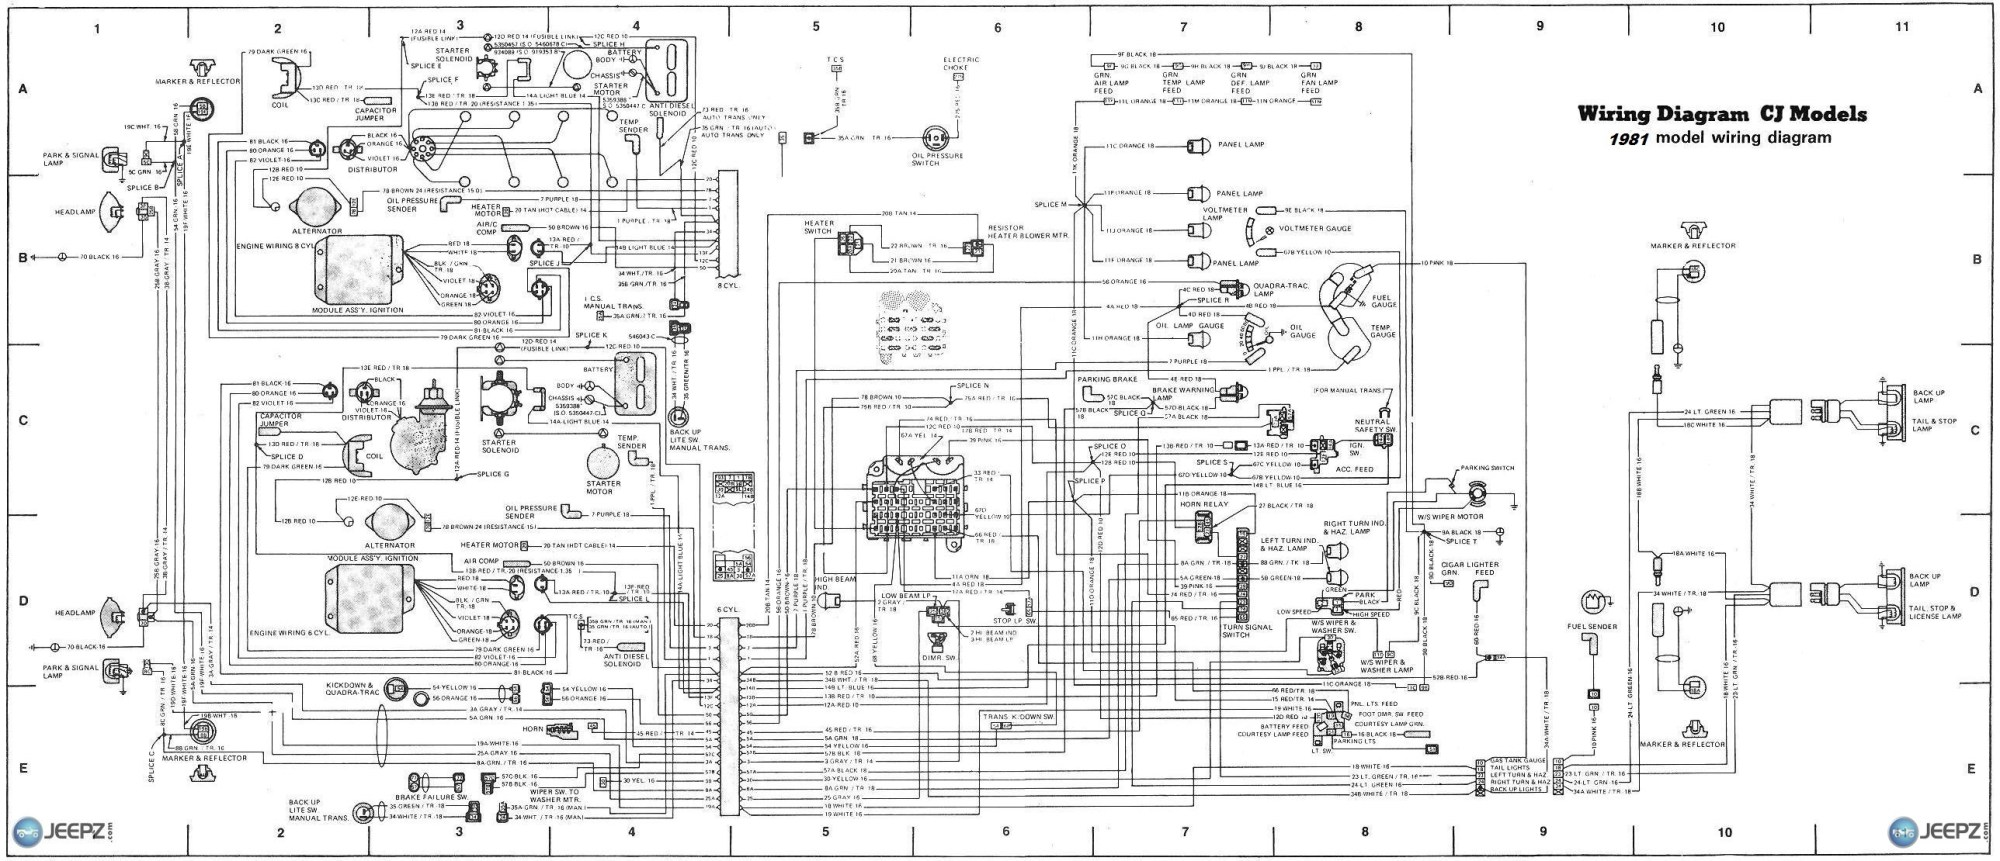 hight resolution of 84 jeep wiring diagram electronic wiring diagrams cj7 ignition wiring diagram 79 cj7 ignition wiring diagram